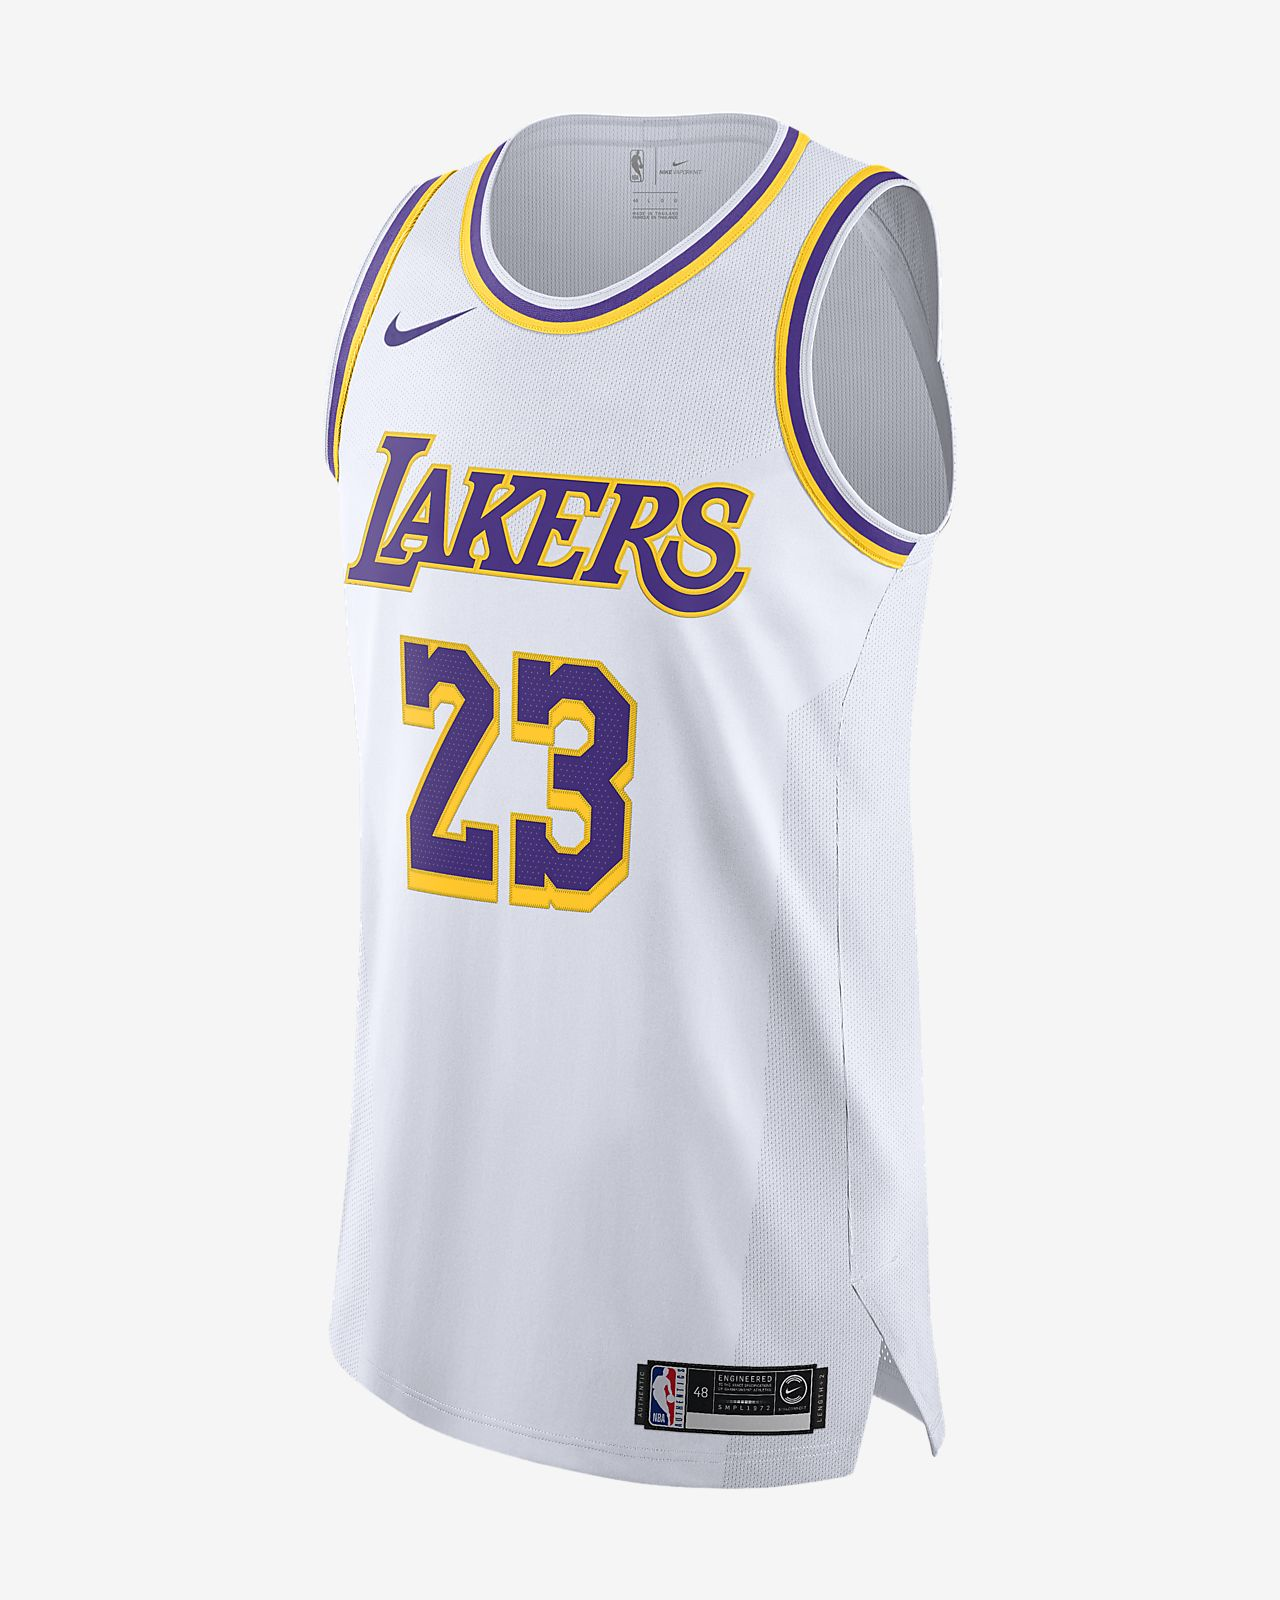 LeBron James Lakers Association Edition Nike NBA Authentic Jersey